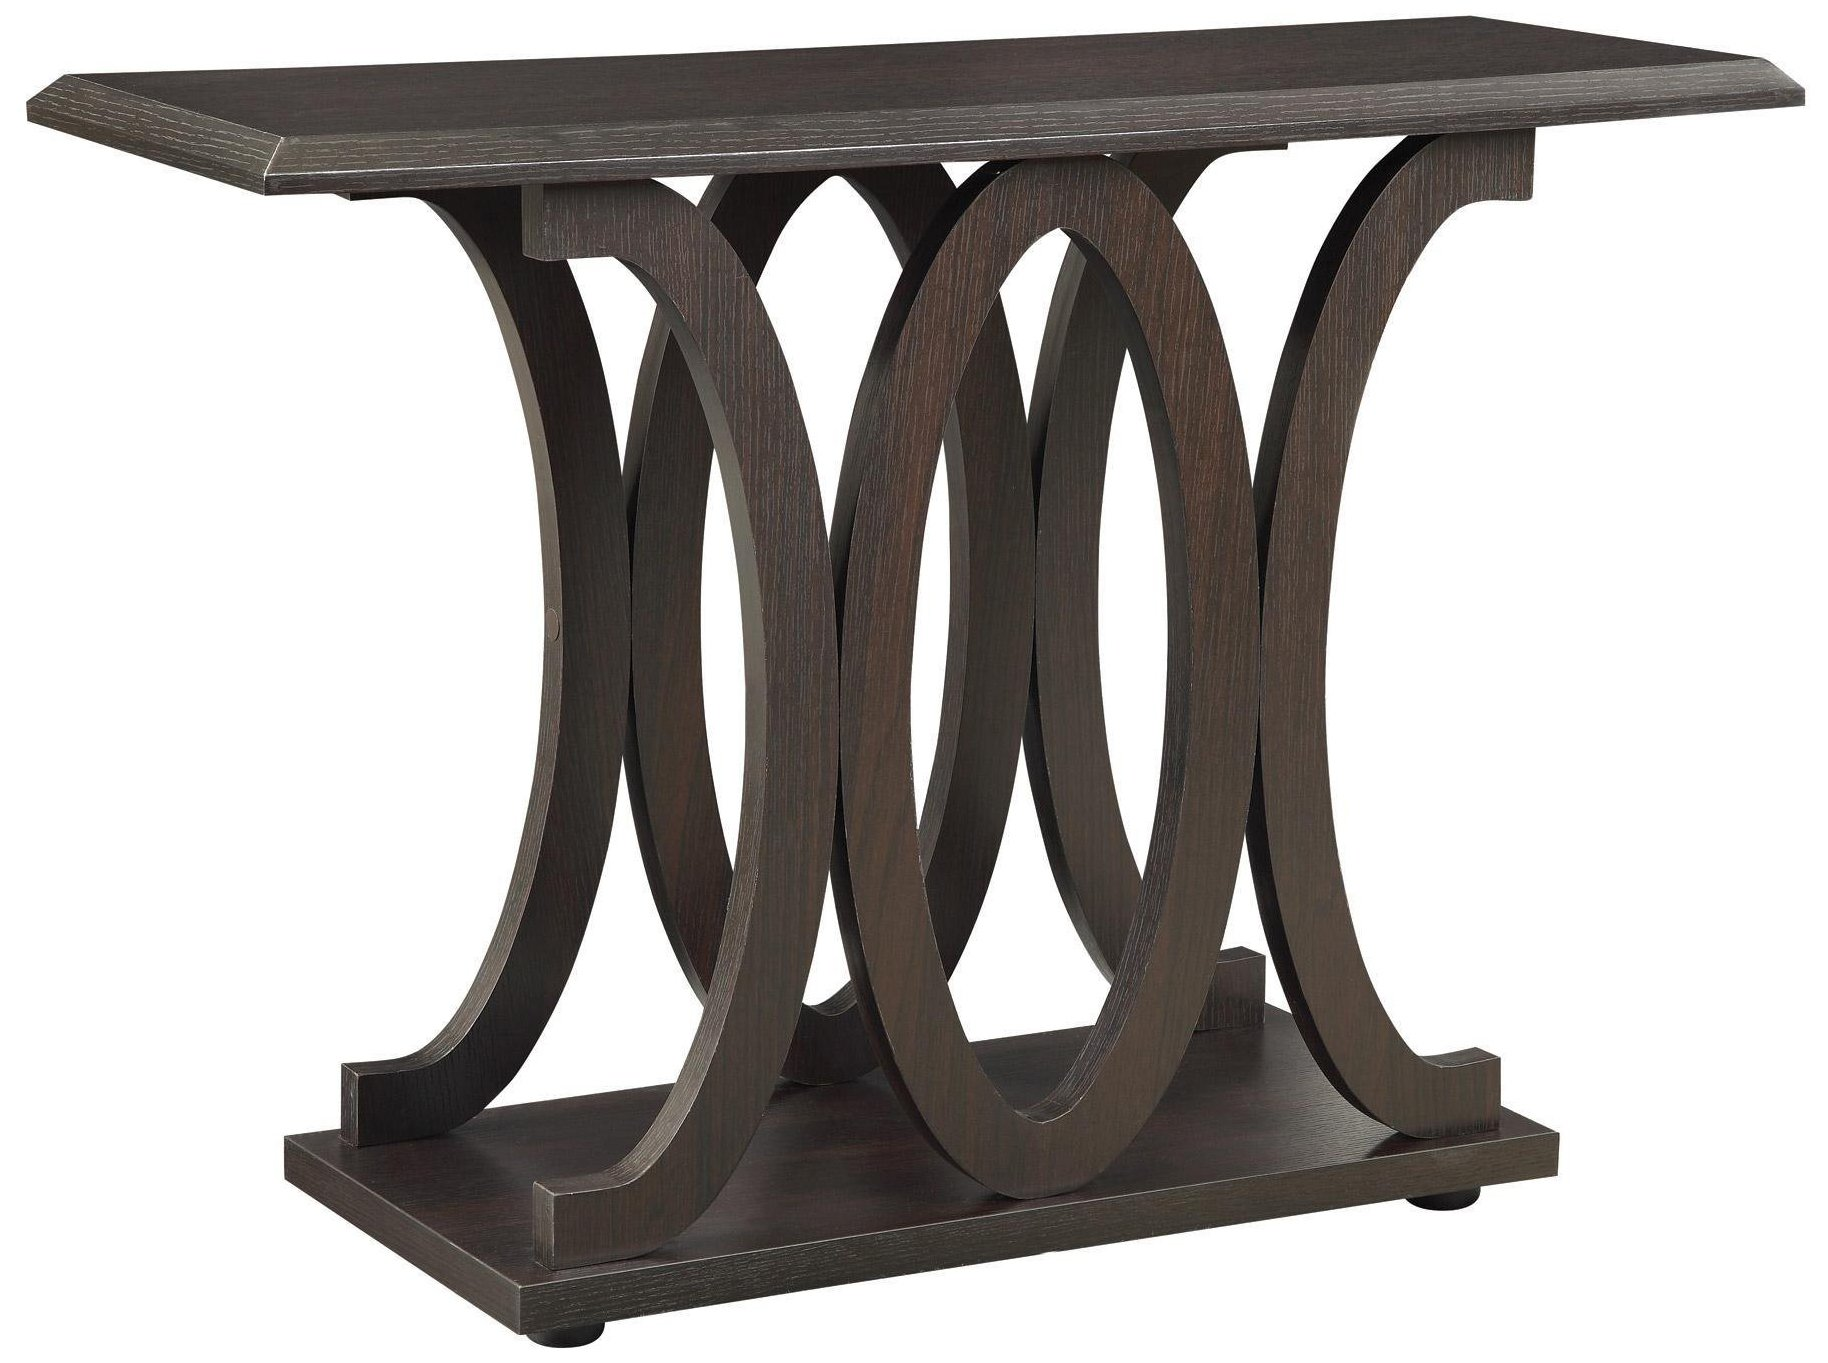 Coaster Home Furnishings 703149 Casual Sofa Table, Cappuccino